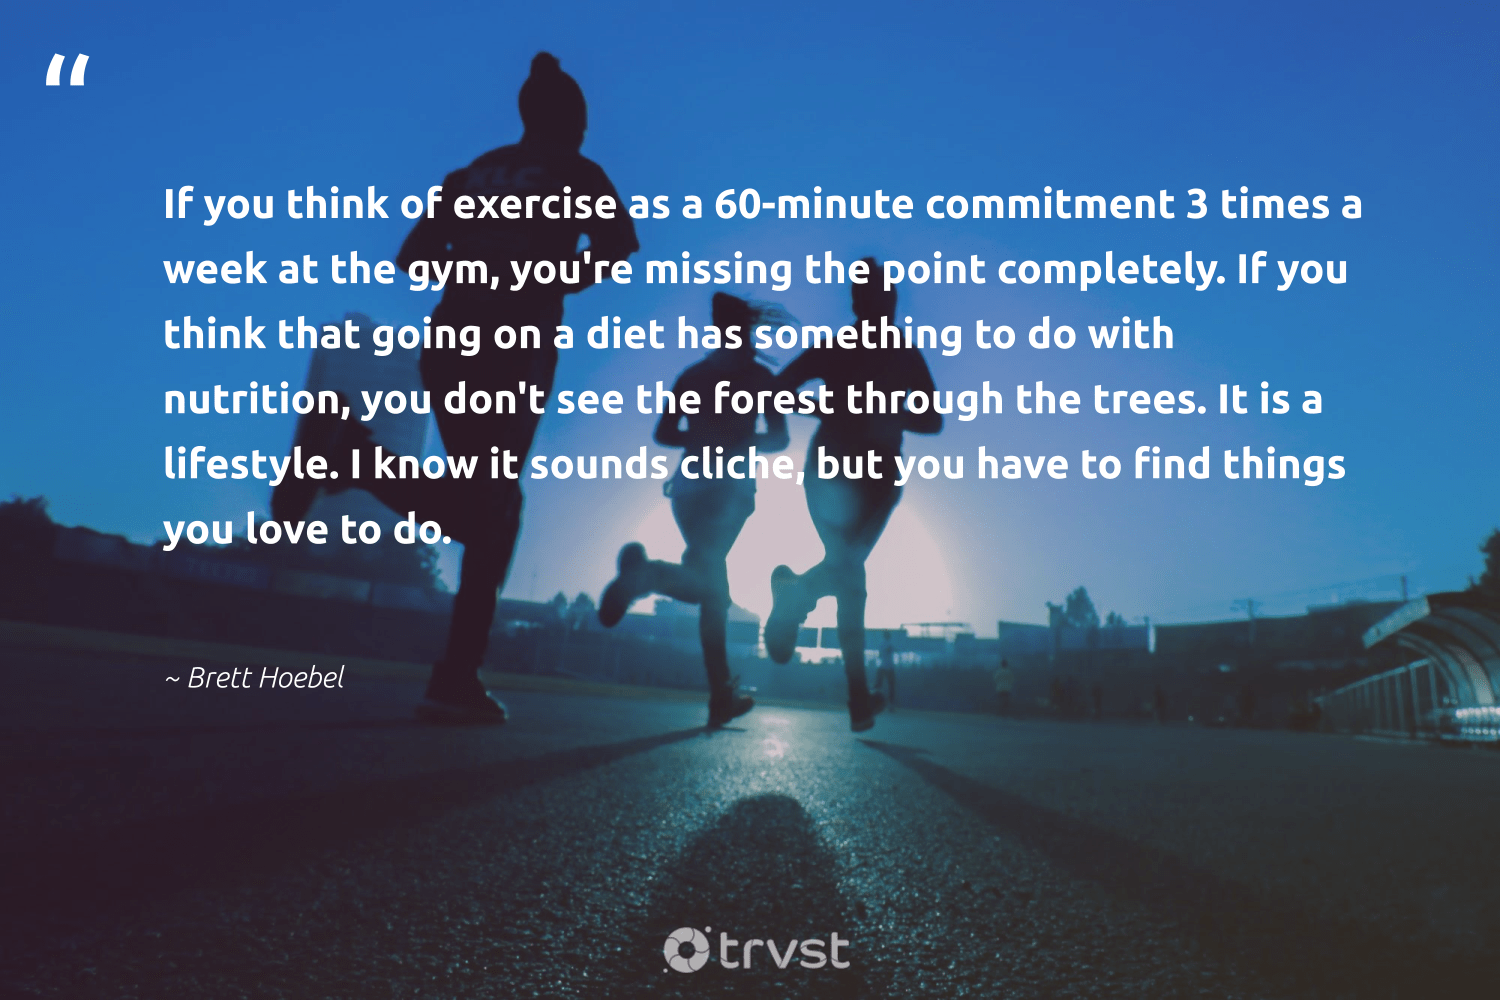 """If you think of exercise as a 60-minute commitment 3 times a week at the gym, you're missing the point completely. If you think that going on a diet has something to do with nutrition, you don't see the forest through the trees. It is a lifestyle. I know it sounds cliche, but you have to find things you love to do.""  - Brett Hoebel #trvst #quotes #love #forest #trees #lifestyle #nutrition #exercise #weplanttrees #treeplanting #begreat #natureseekers"